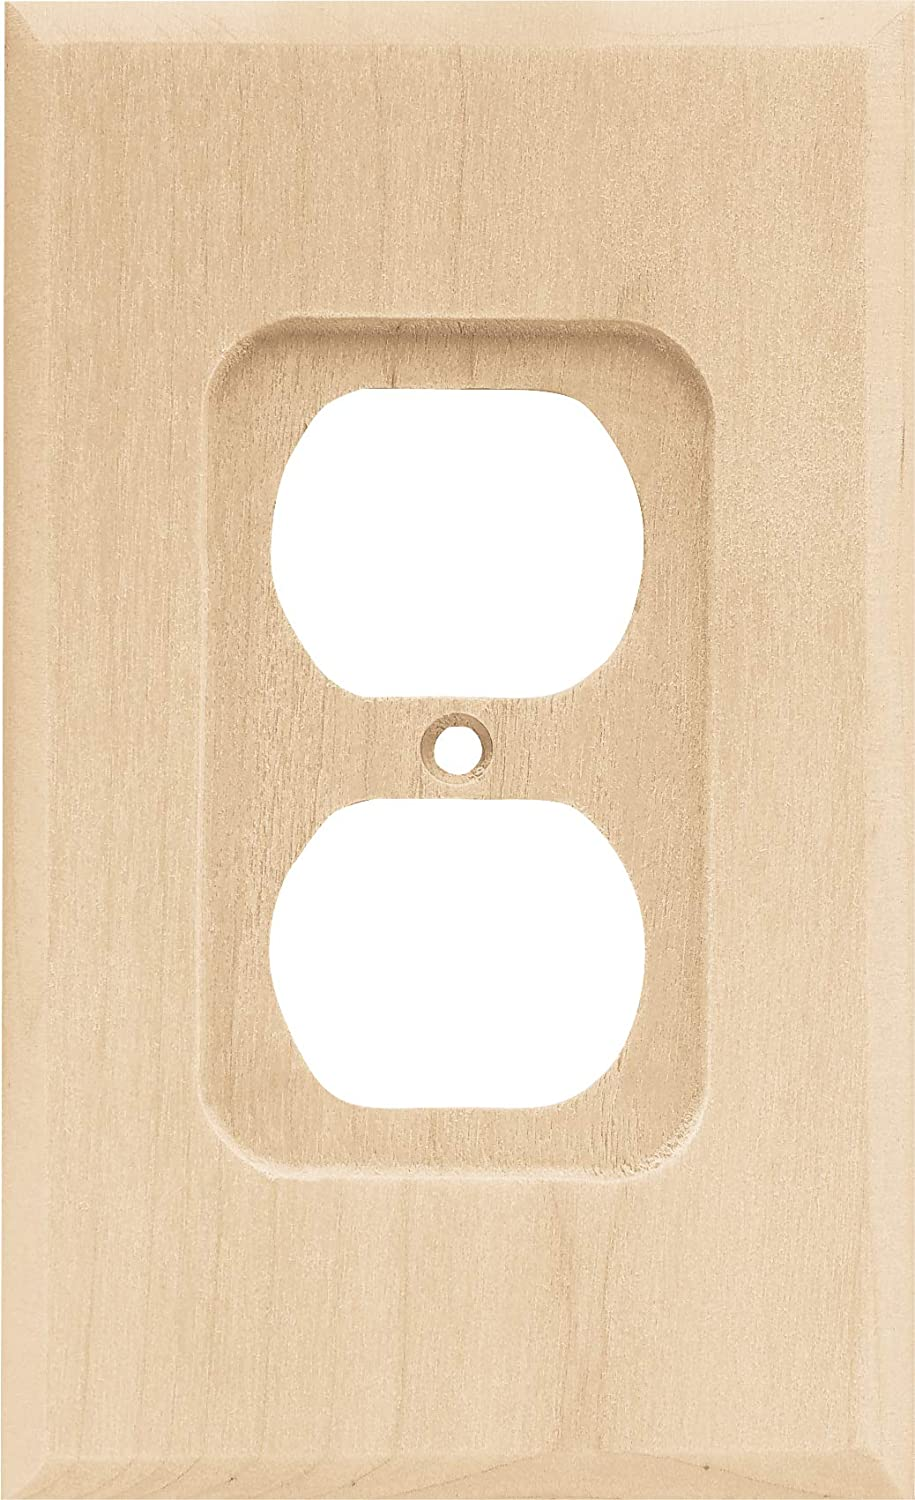 Brainerd 64667 Wood Square Single Duplex Outlet Wall Plate / Switch Plate / Cover Value Pack (6 pieces), Unfinished Wood